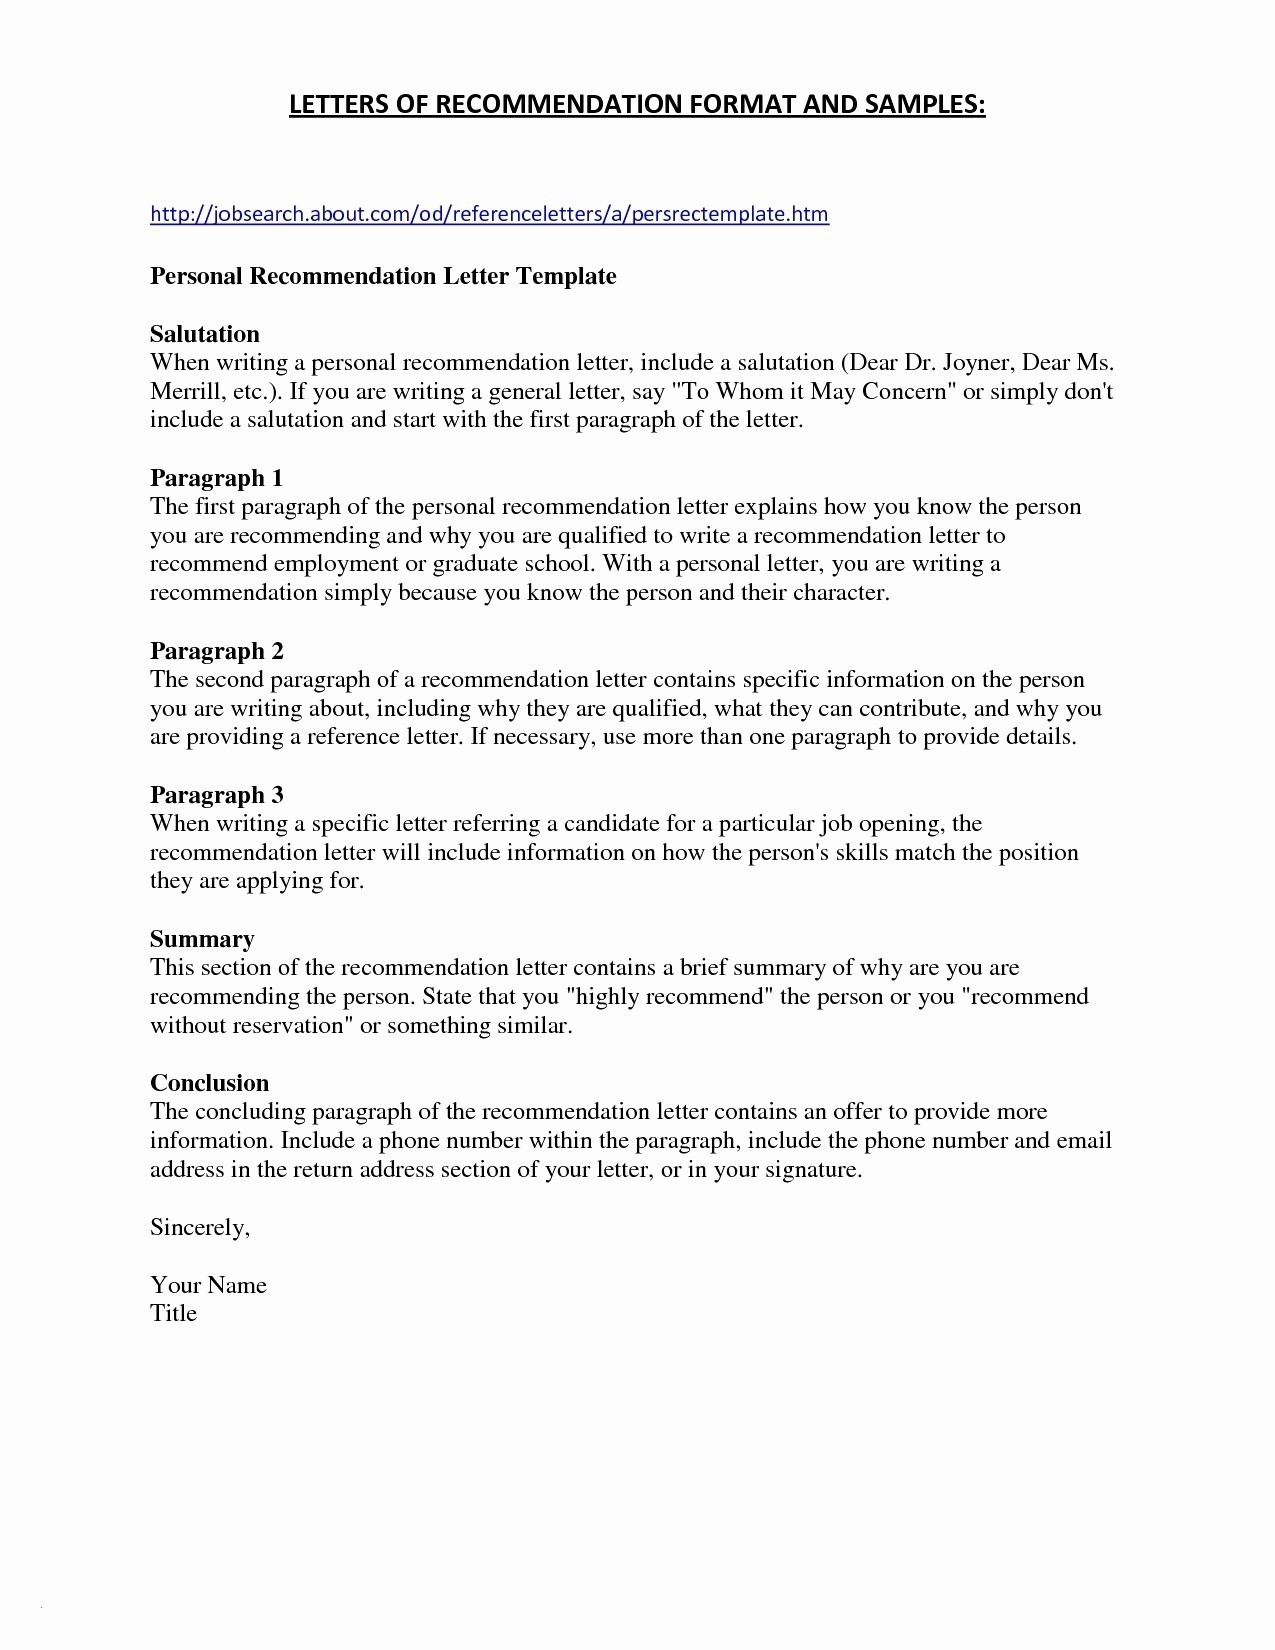 Personal Recommendation Letter Template - Making A Resume Inspirationa Write Resume Template Elegant Free